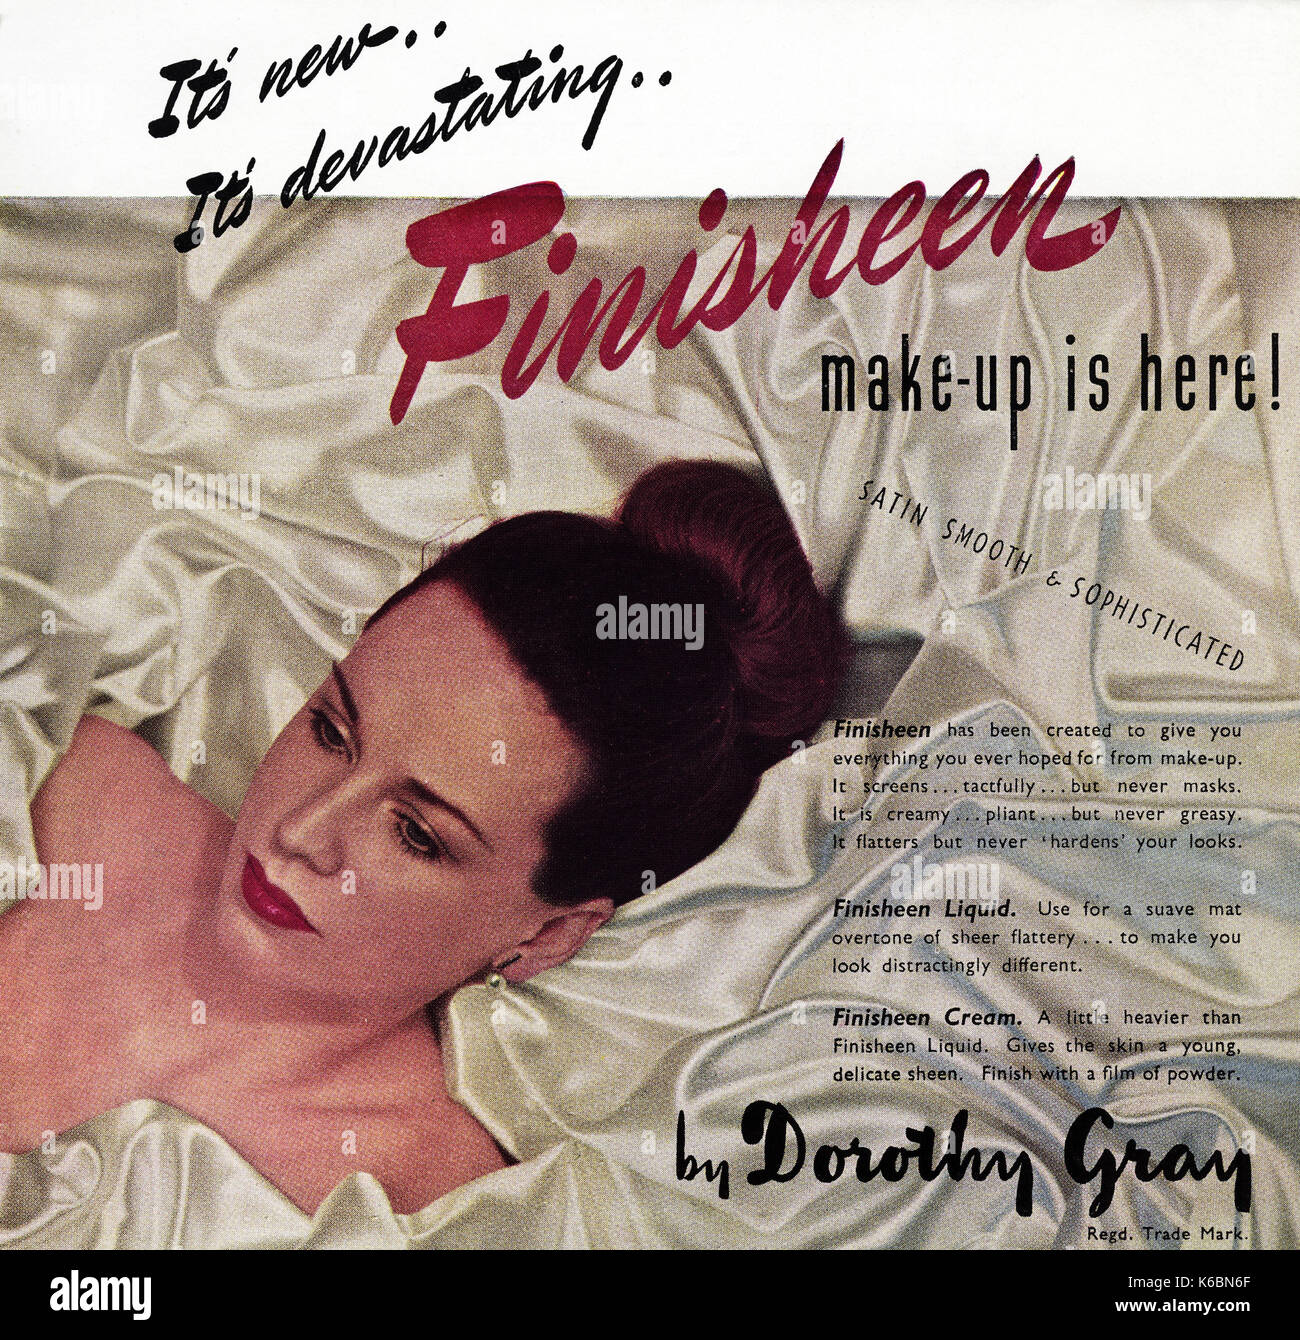 1940s old vintage original advert advertising Dorothy Gray make-up in magazine circa 1947 when supplies were still restricted under post-war rationing - Stock Image